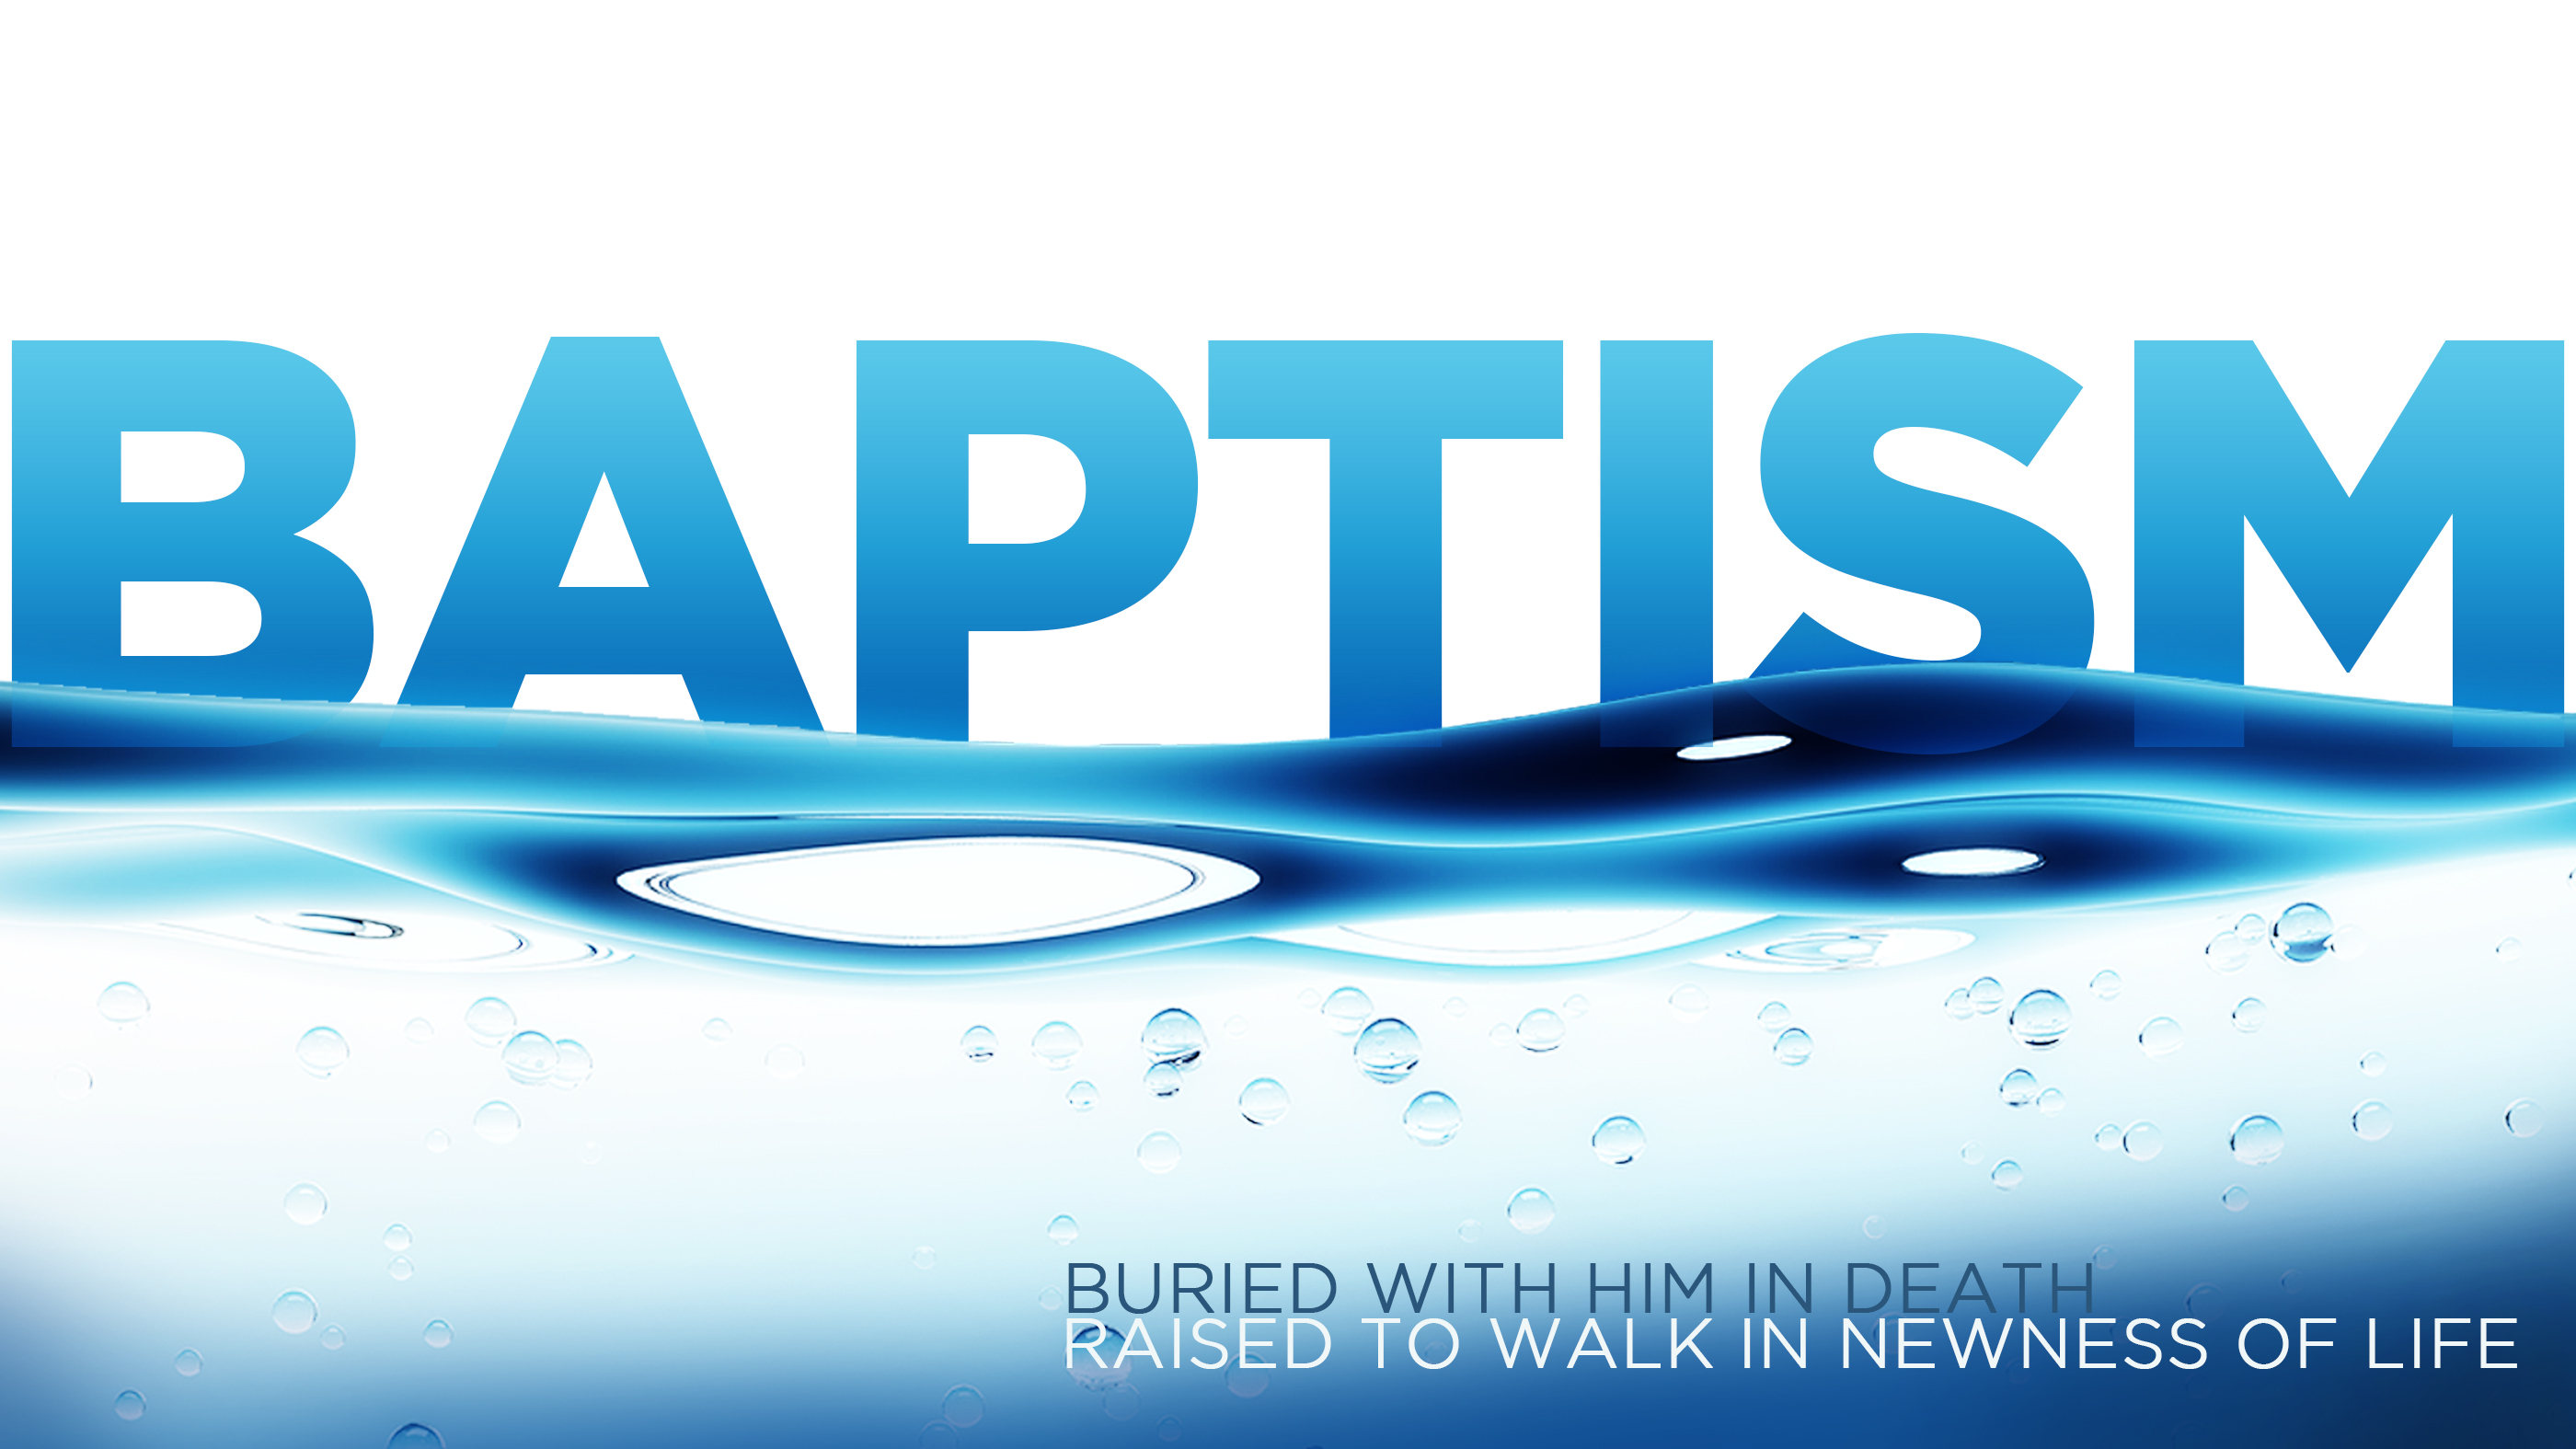 Baptisms   new hope words only